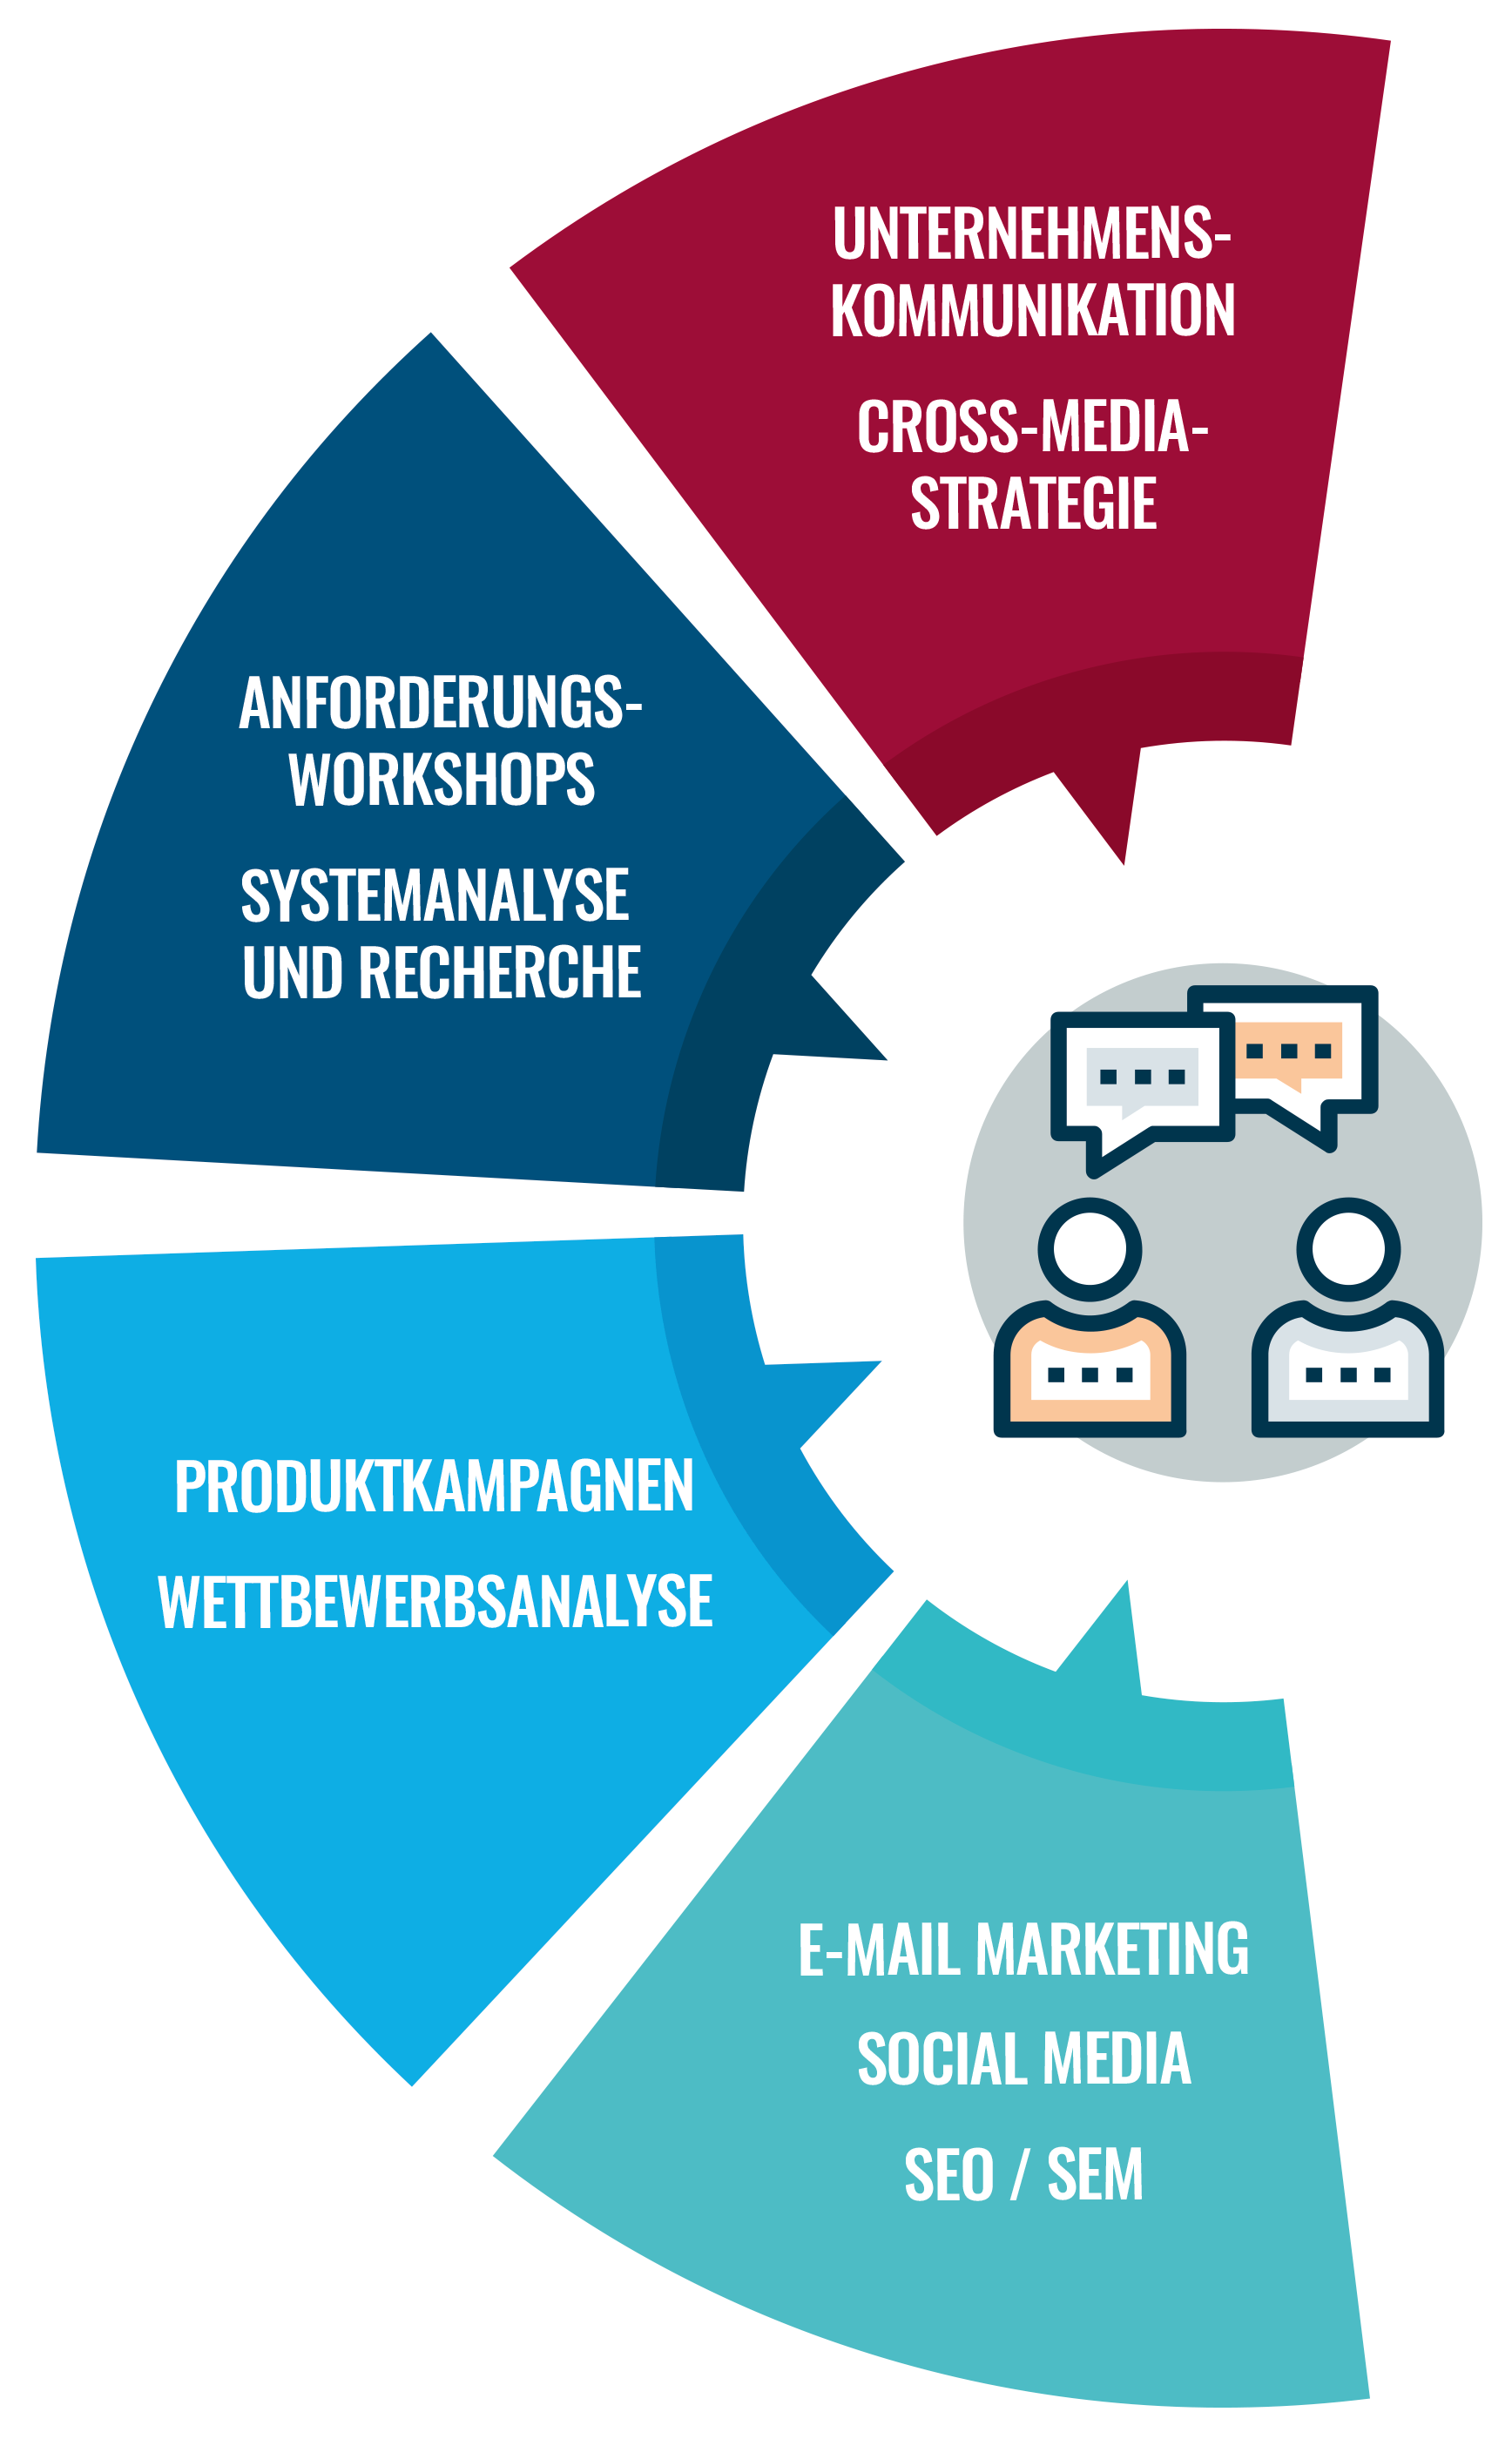 "Leistungsübersicht Barth Medienhaus ""Consulting & Strategie"": Cross-Media-Strategie, Unternehmenskommunikation, Anforderungsworkshops, Produktkampagnen, E-Mail-Marketing, SEM, Social Media"